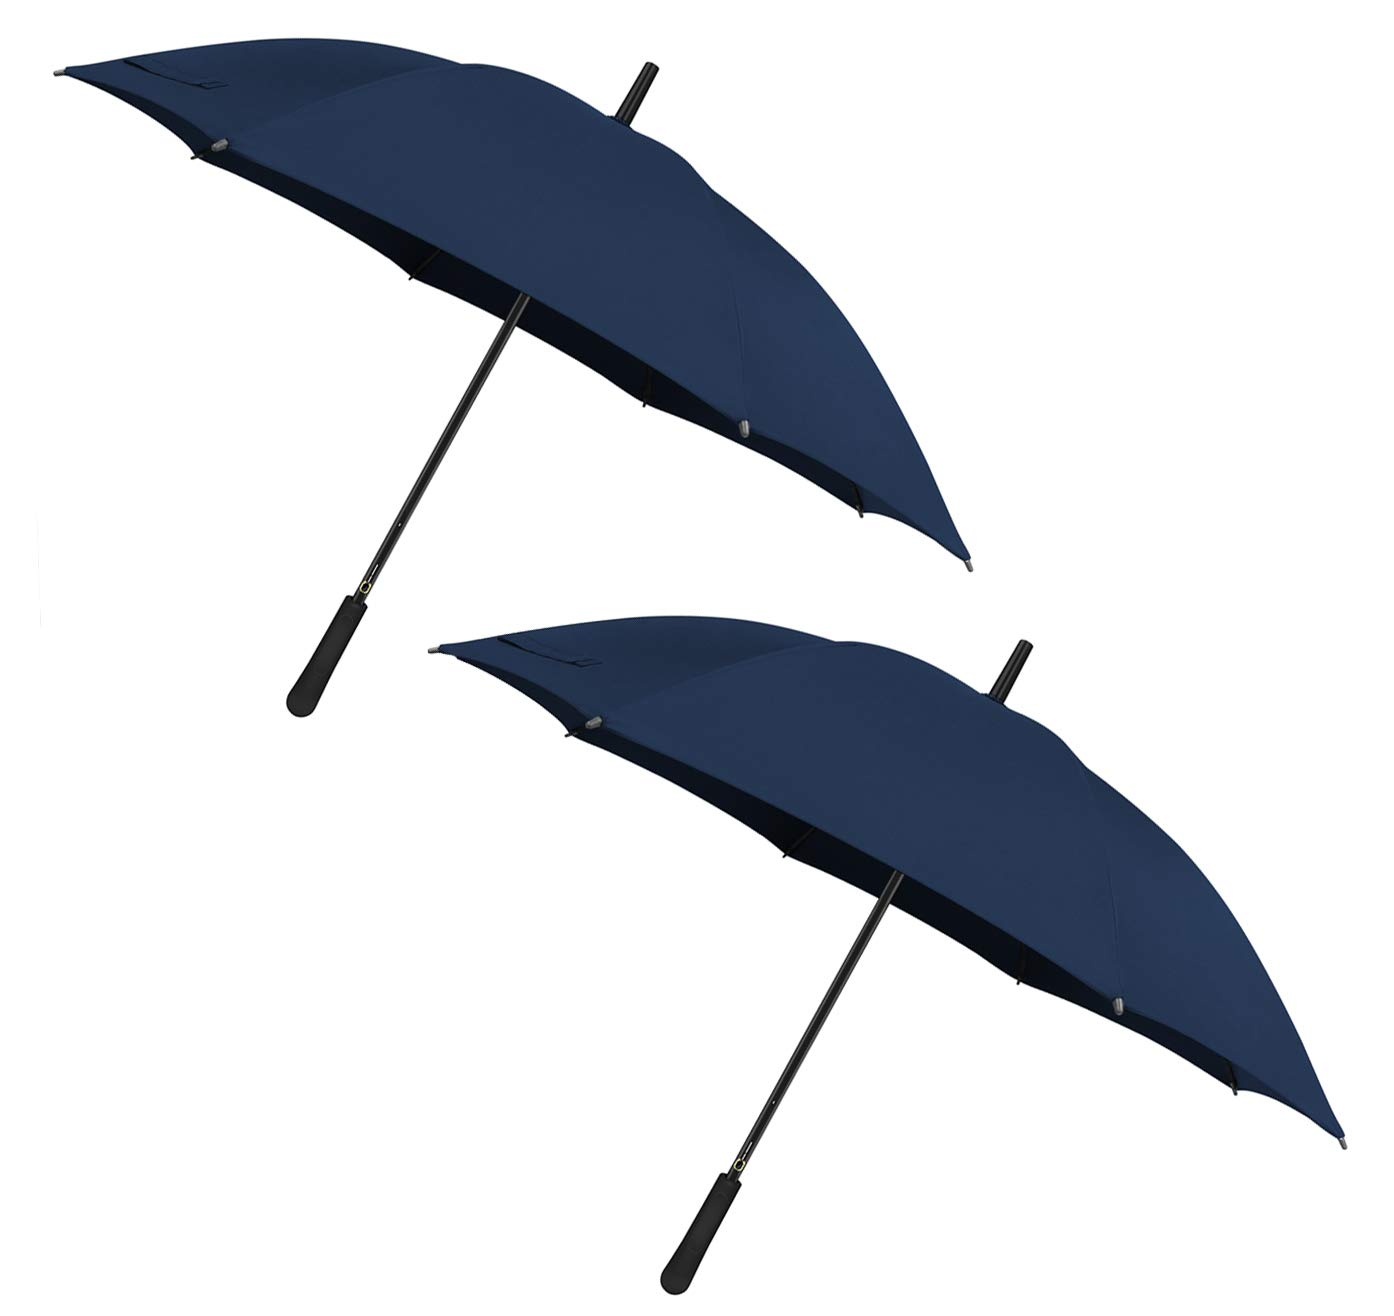 43 In Long Stick Umbrella for Men and Women,Automatic Open, Double Strong Umbrella Bone for Outdoor Use-Purplish Blue(2 Pack) by TOPULORS